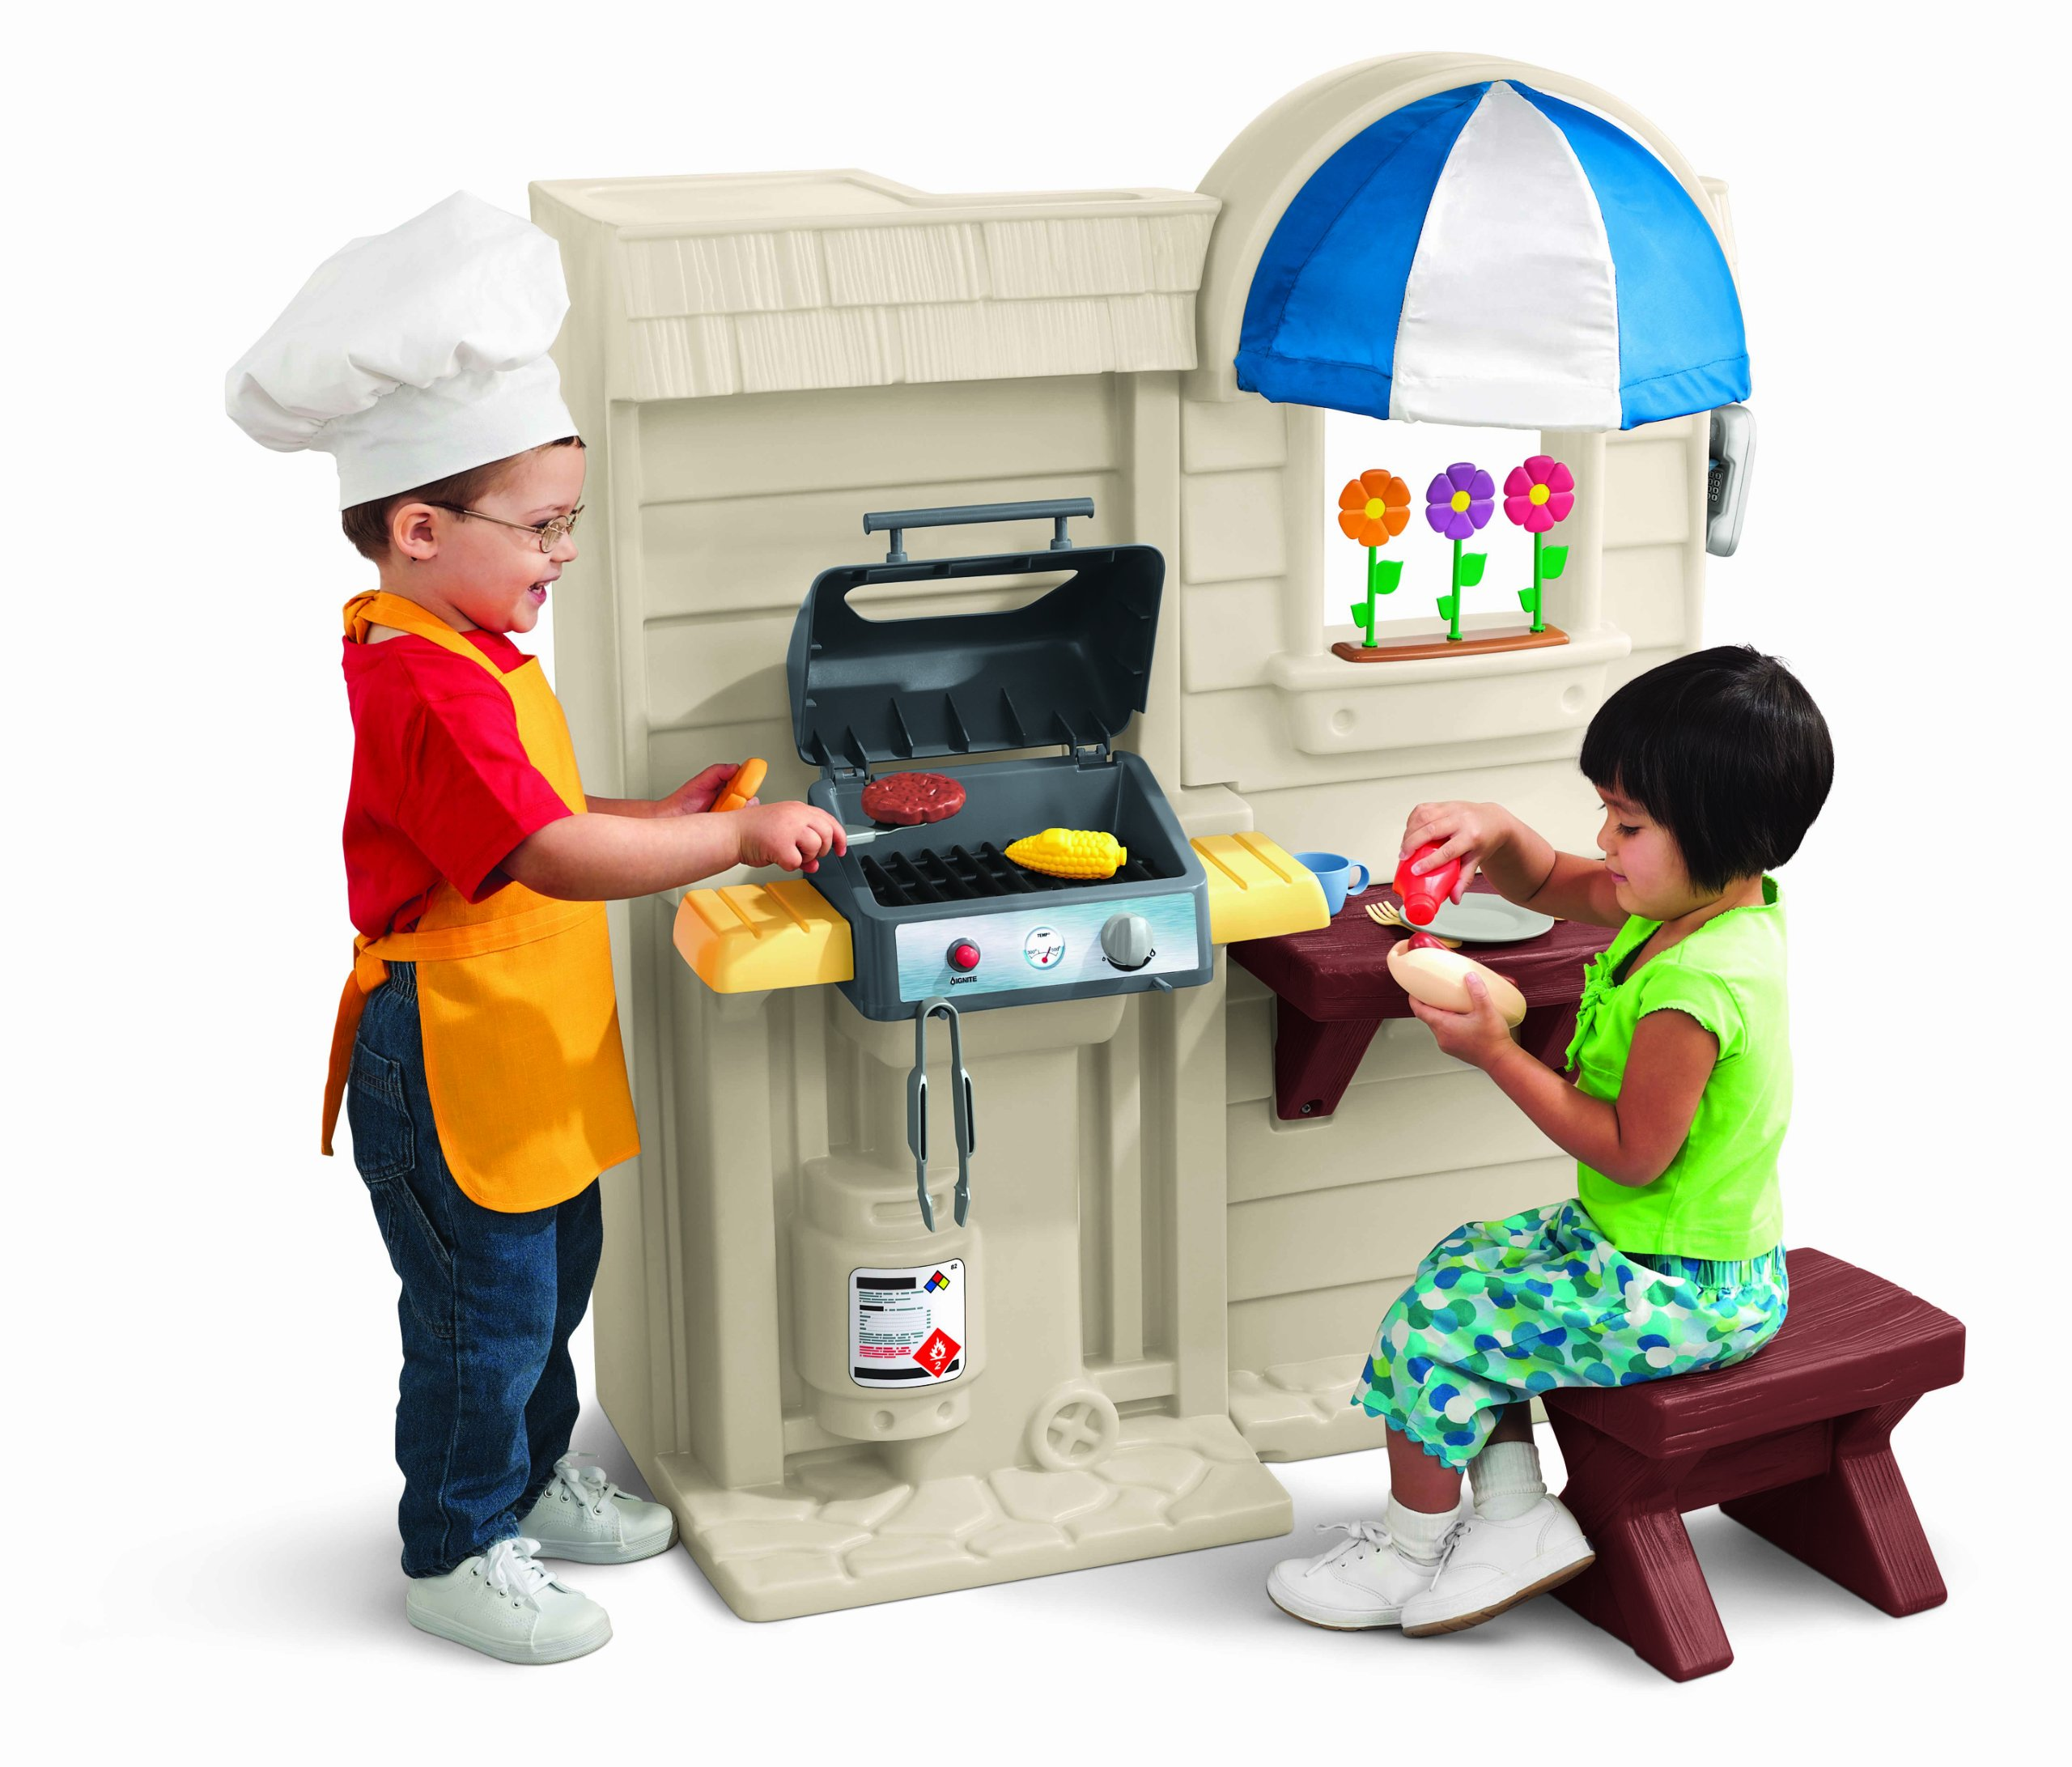 Little Tikes Inside Outside Cook N Grill Kitchen Buy Online At Best Price In Uae Amazon Ae